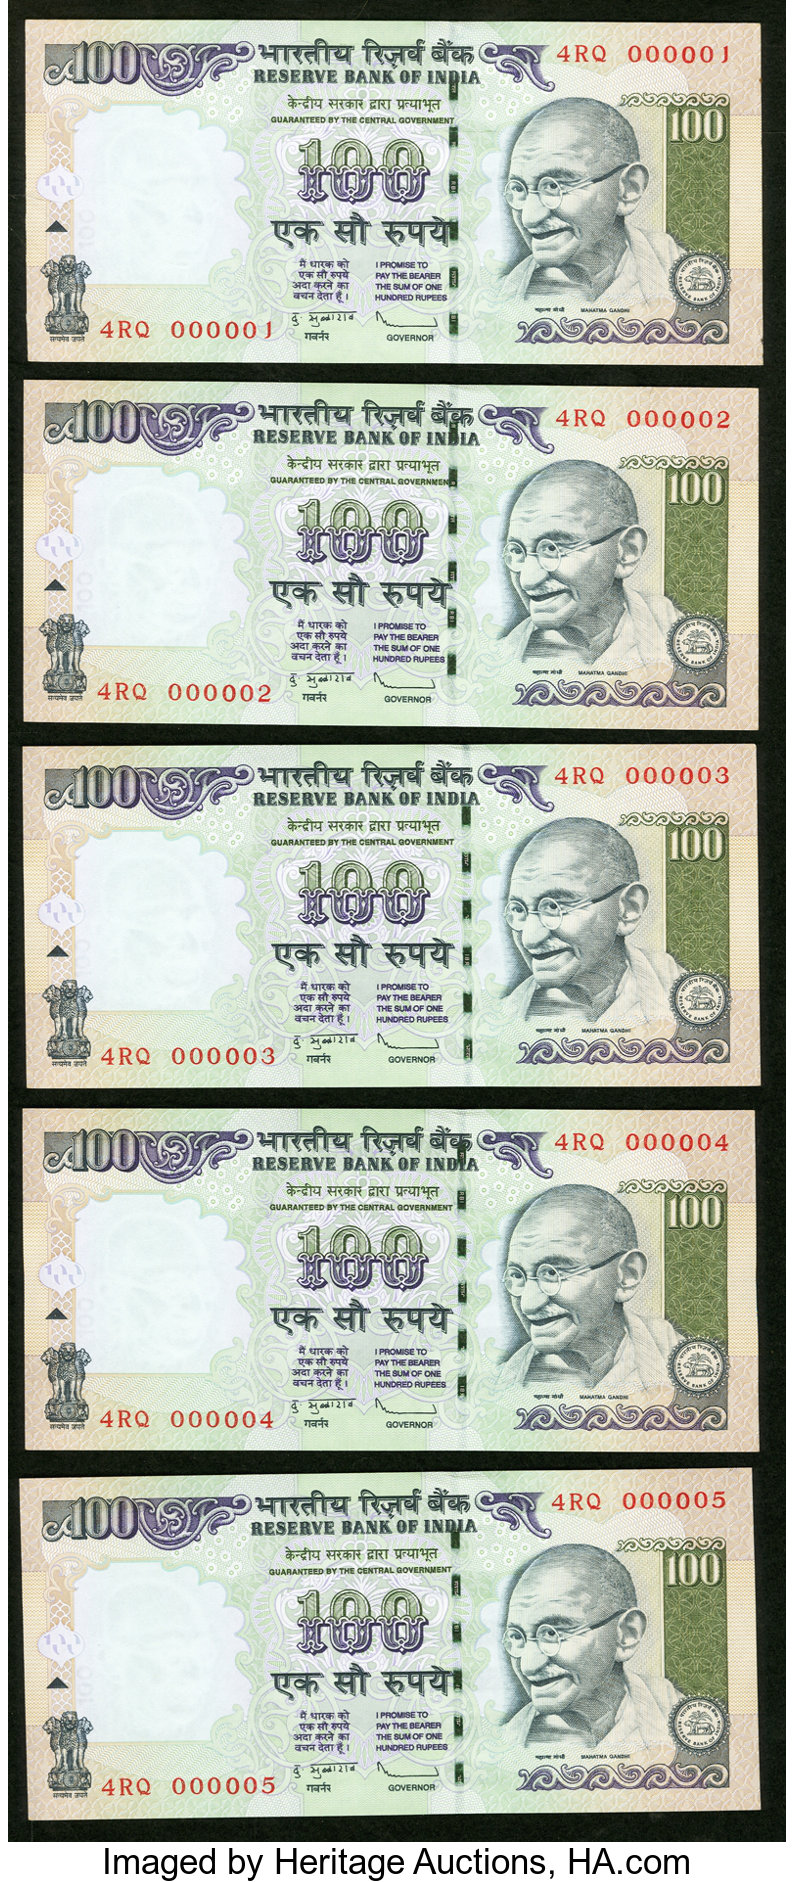 Rs 100// Latest Issue Very Low Serial Number 000006 GEM UNC